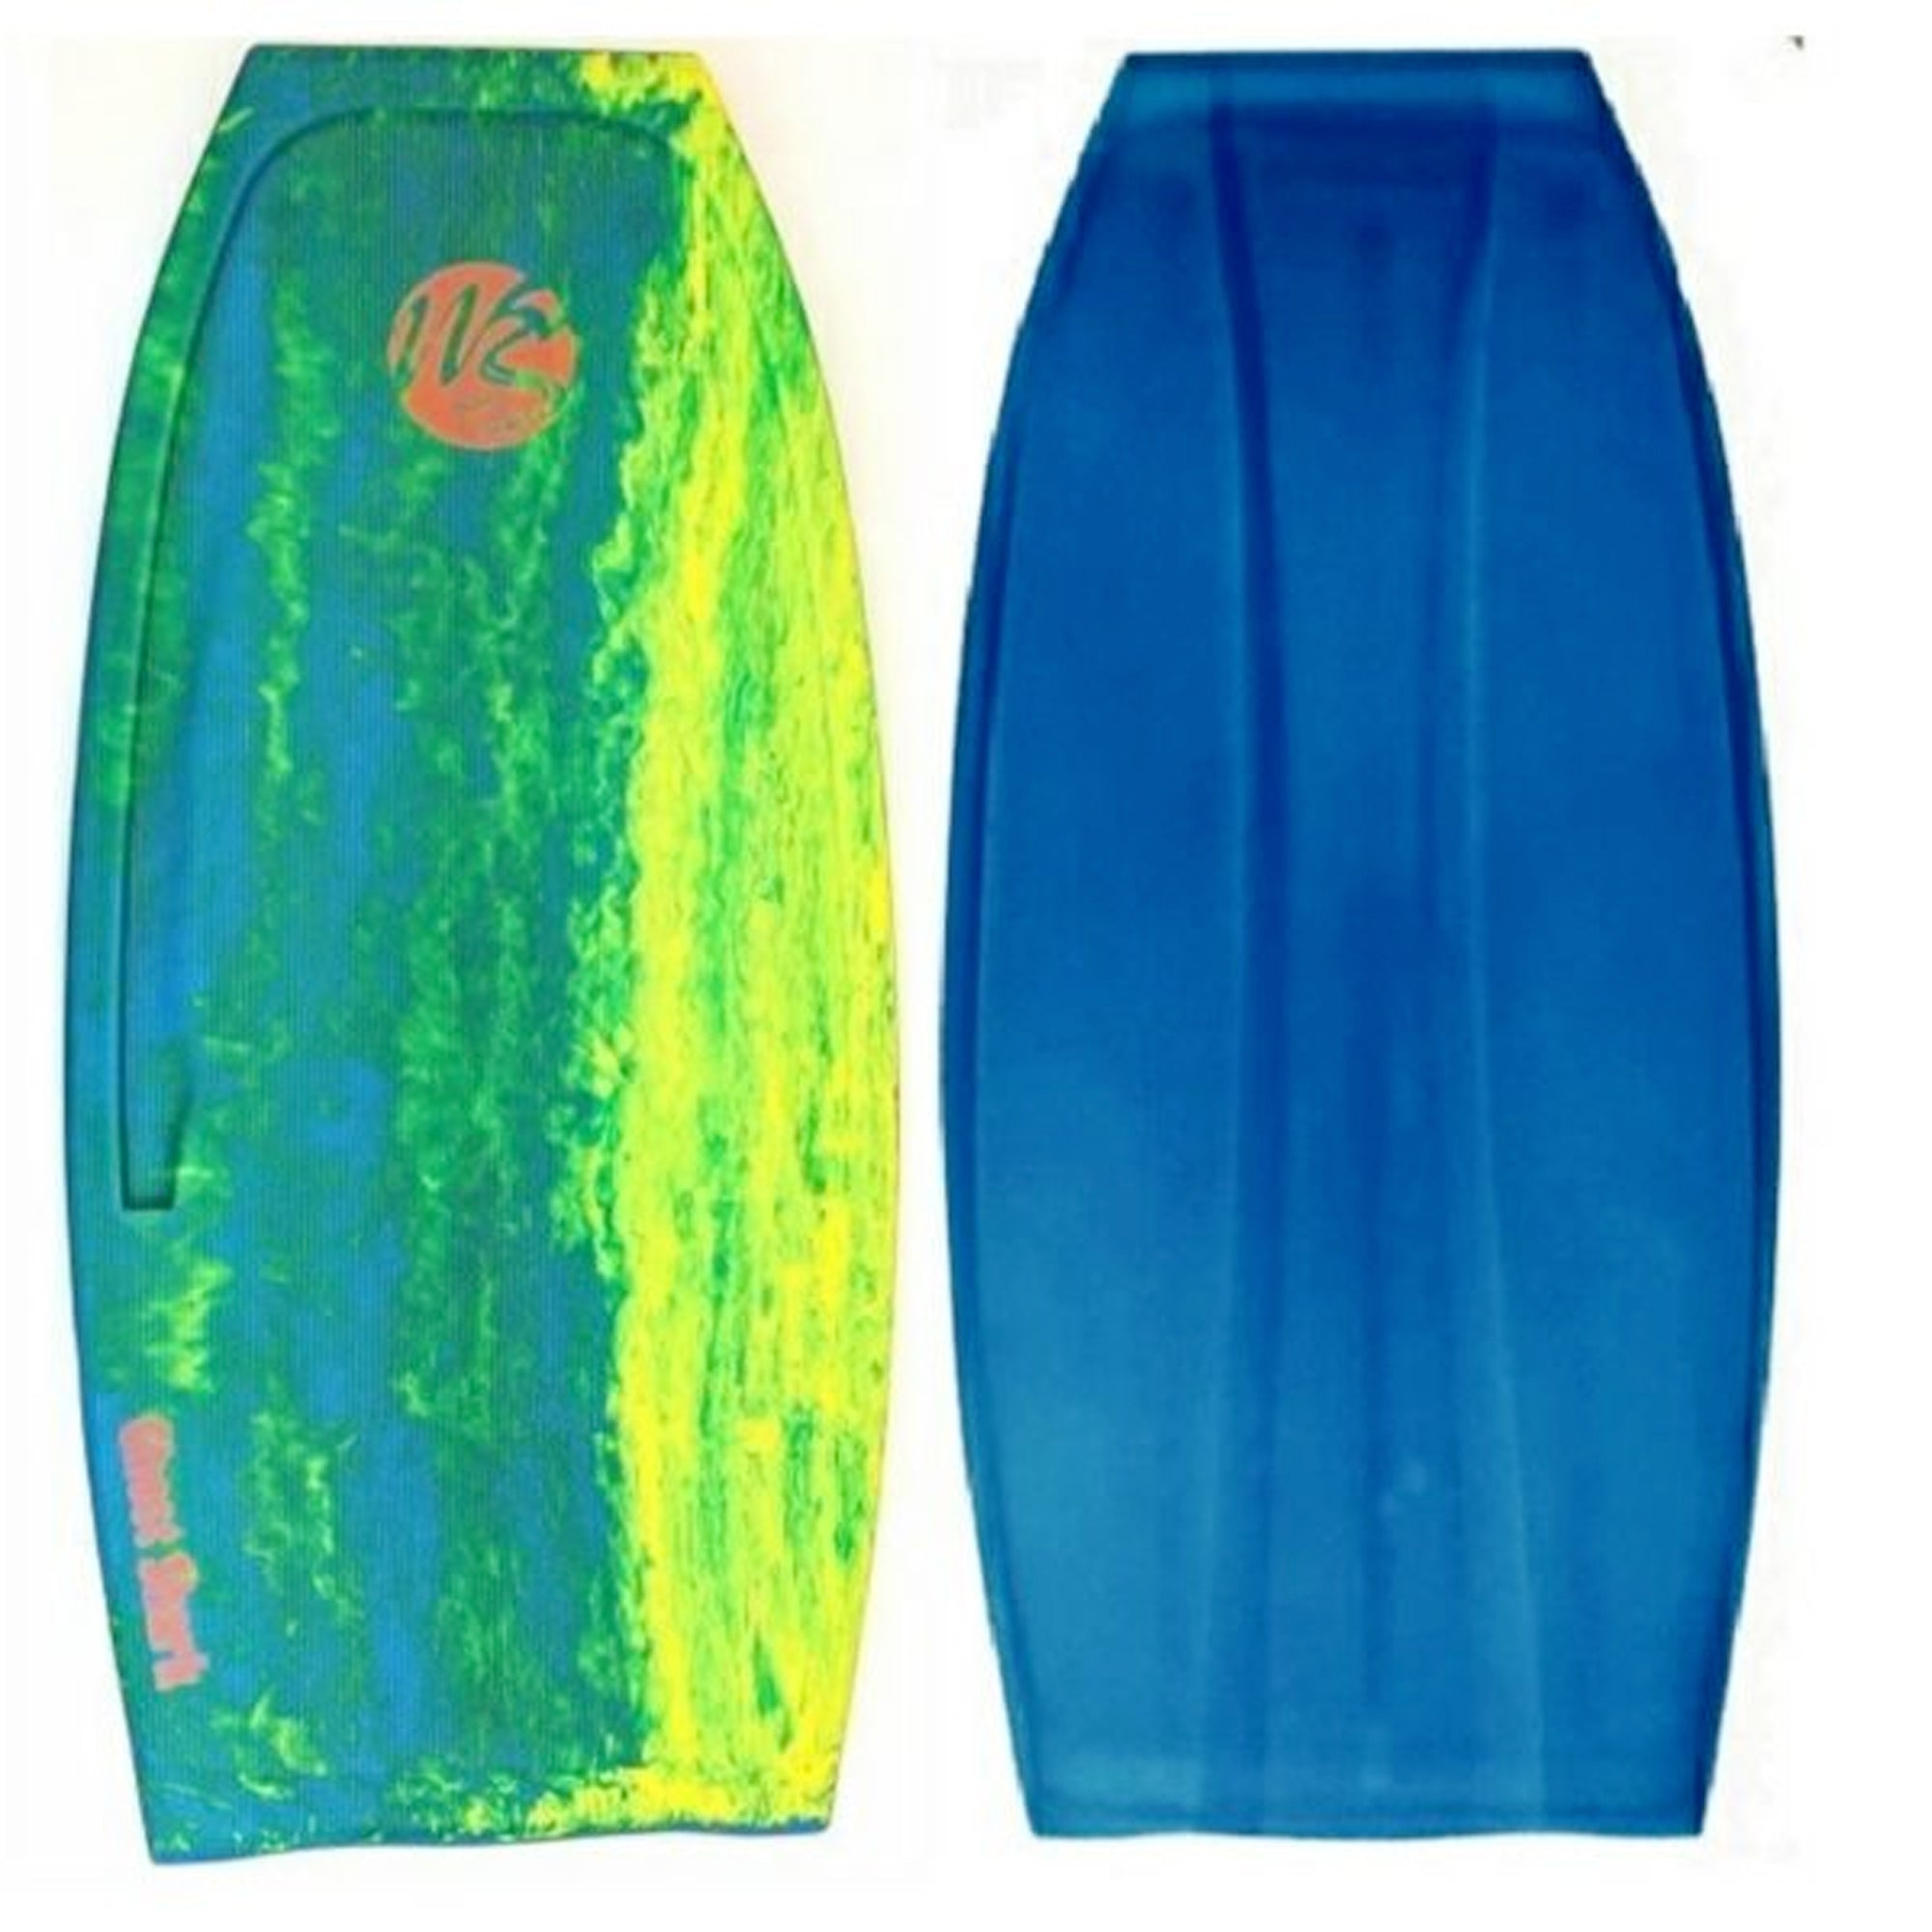 "Wave Skater Pro Ghost Shark 48"" Bodyboard - Aqua/Yellow/Lime"